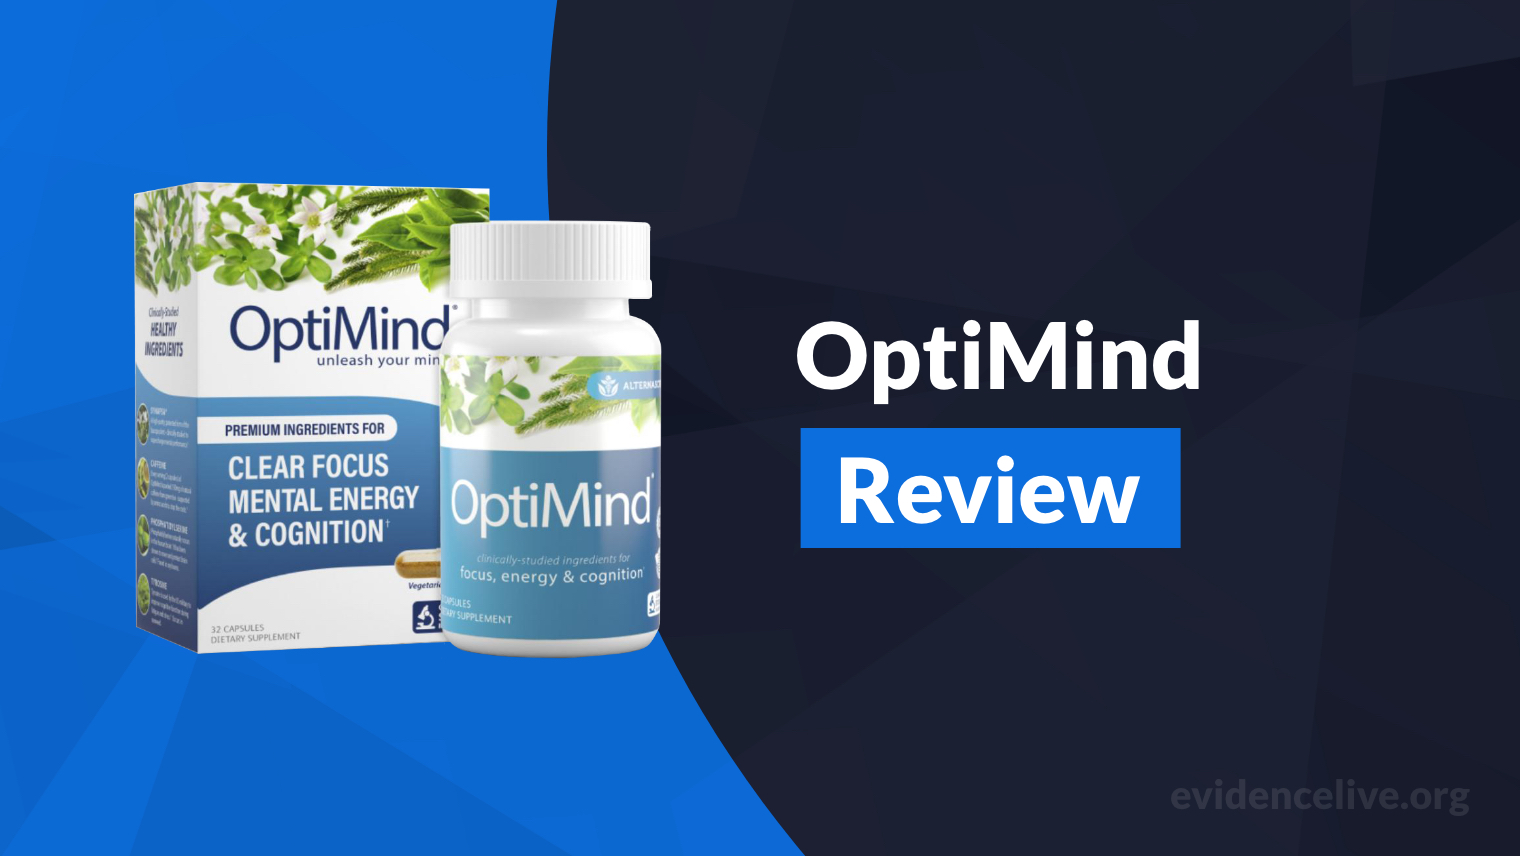 OptiMind Review: Is It Still a Legit Product?